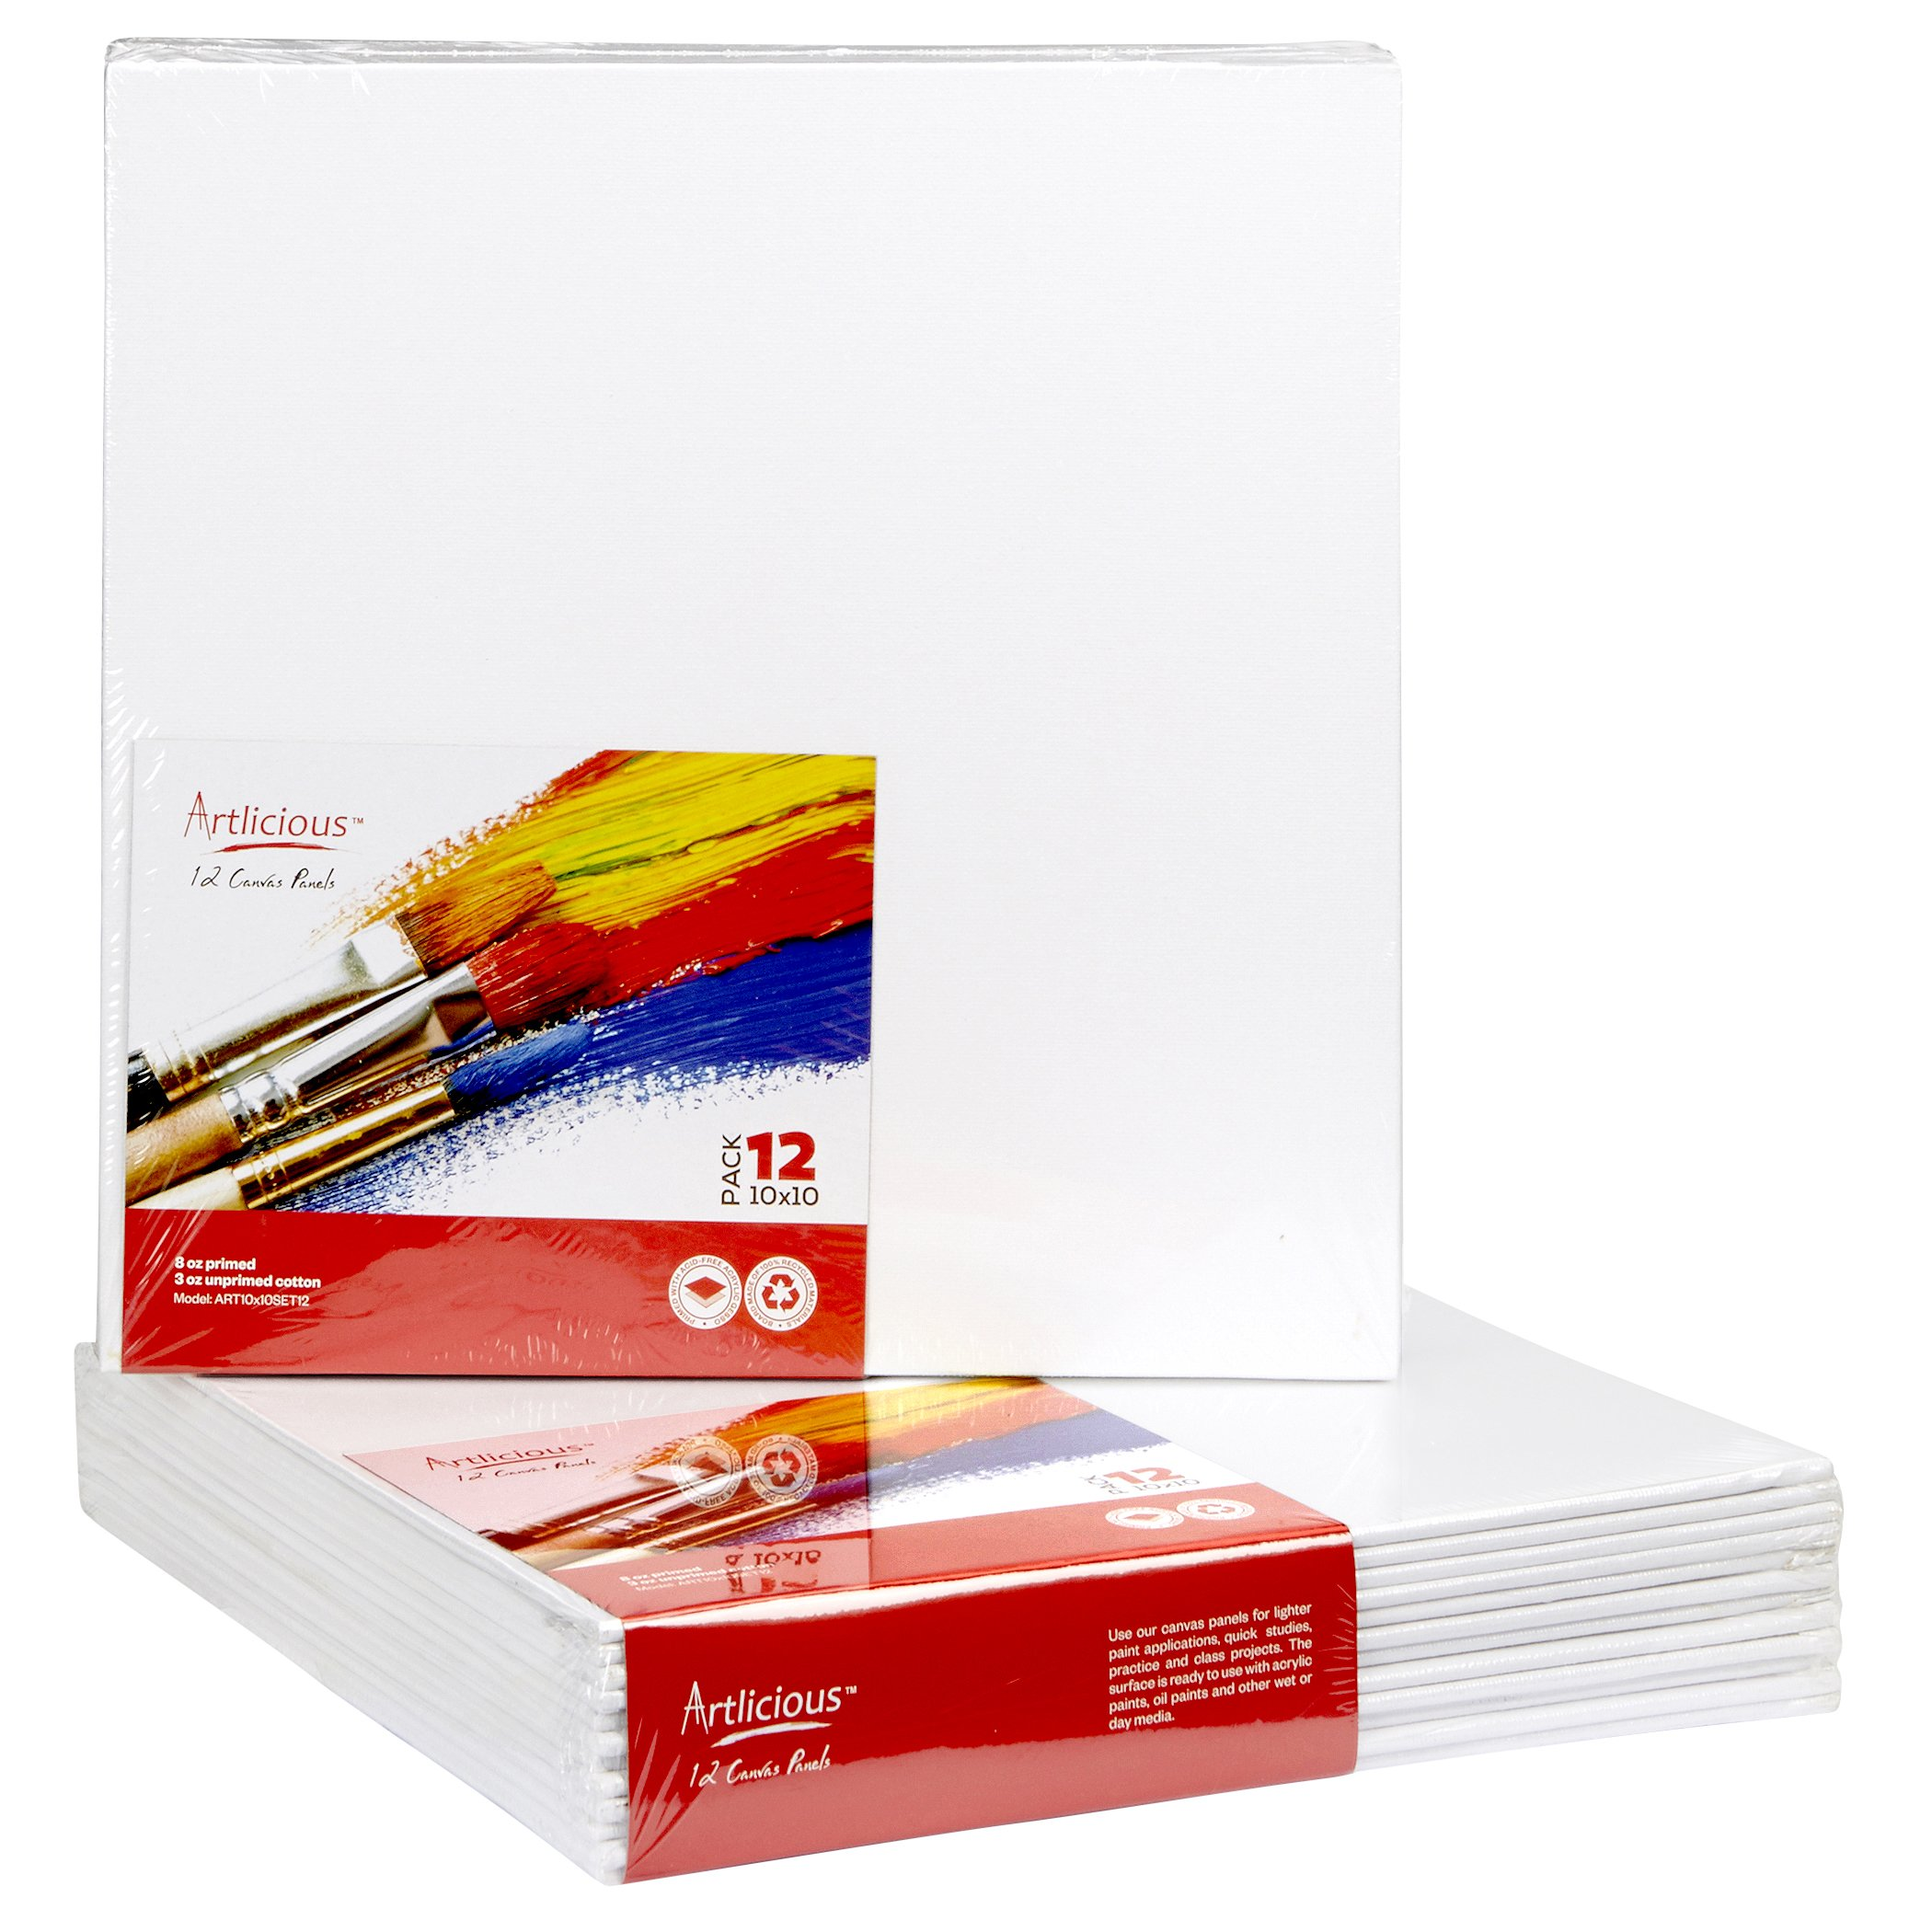 Artlicious - 8x10 Classroom Super Value 24 Pack - Artist Canvas Panel Boards for Painting by Artlicious (Image #1)